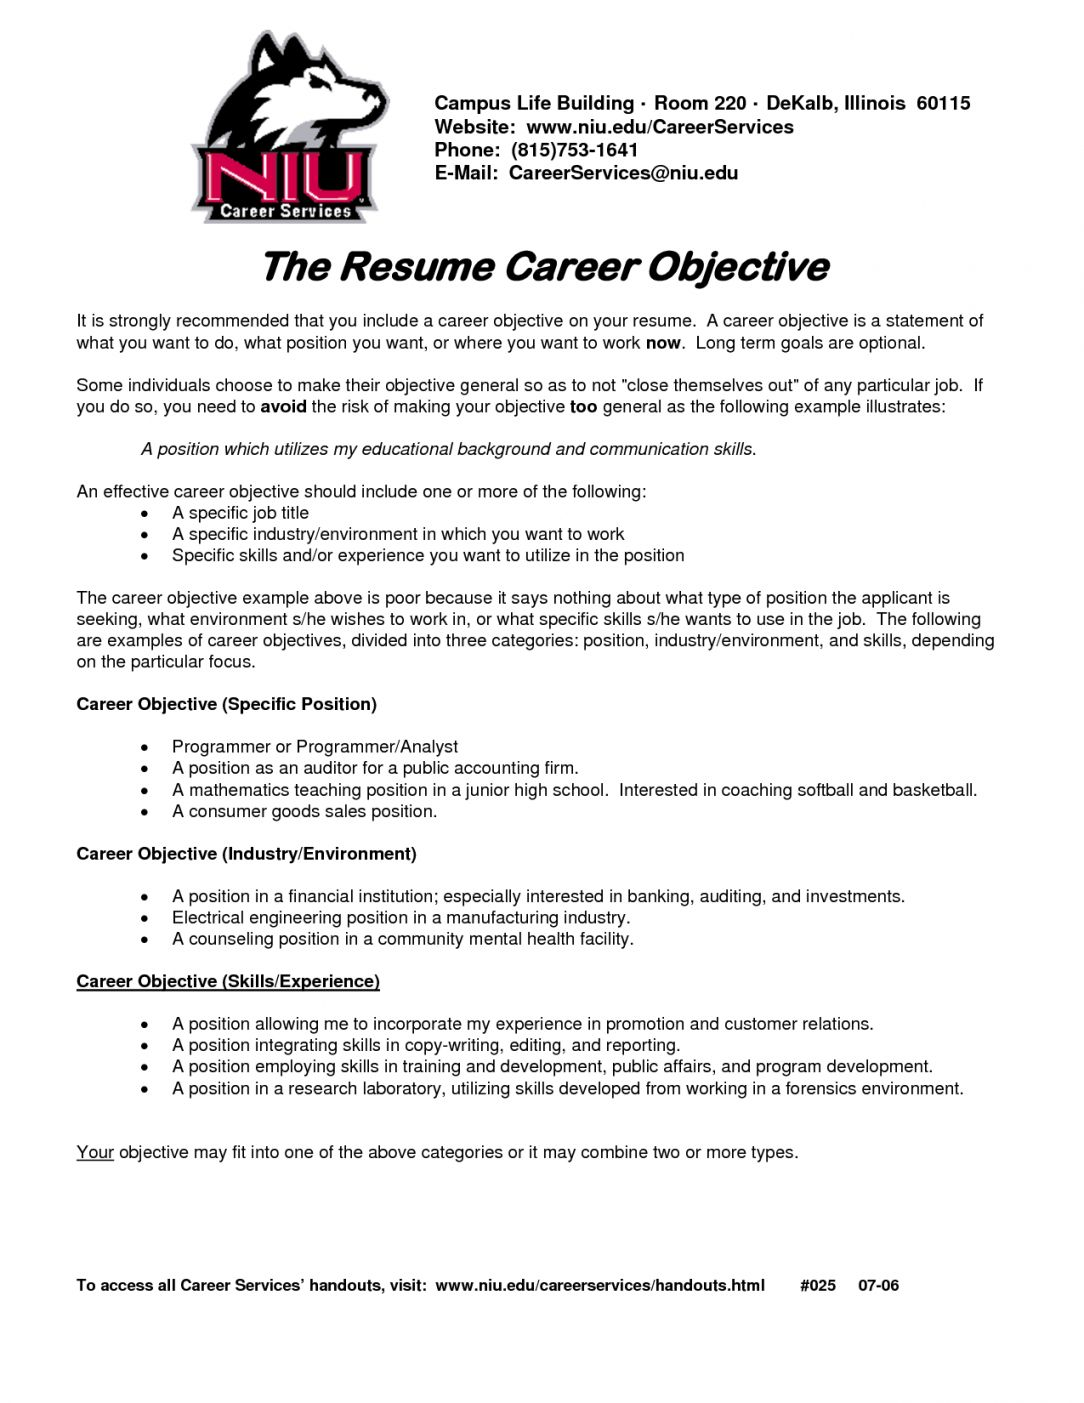 Ways to Write an Objective in a Resume (With images